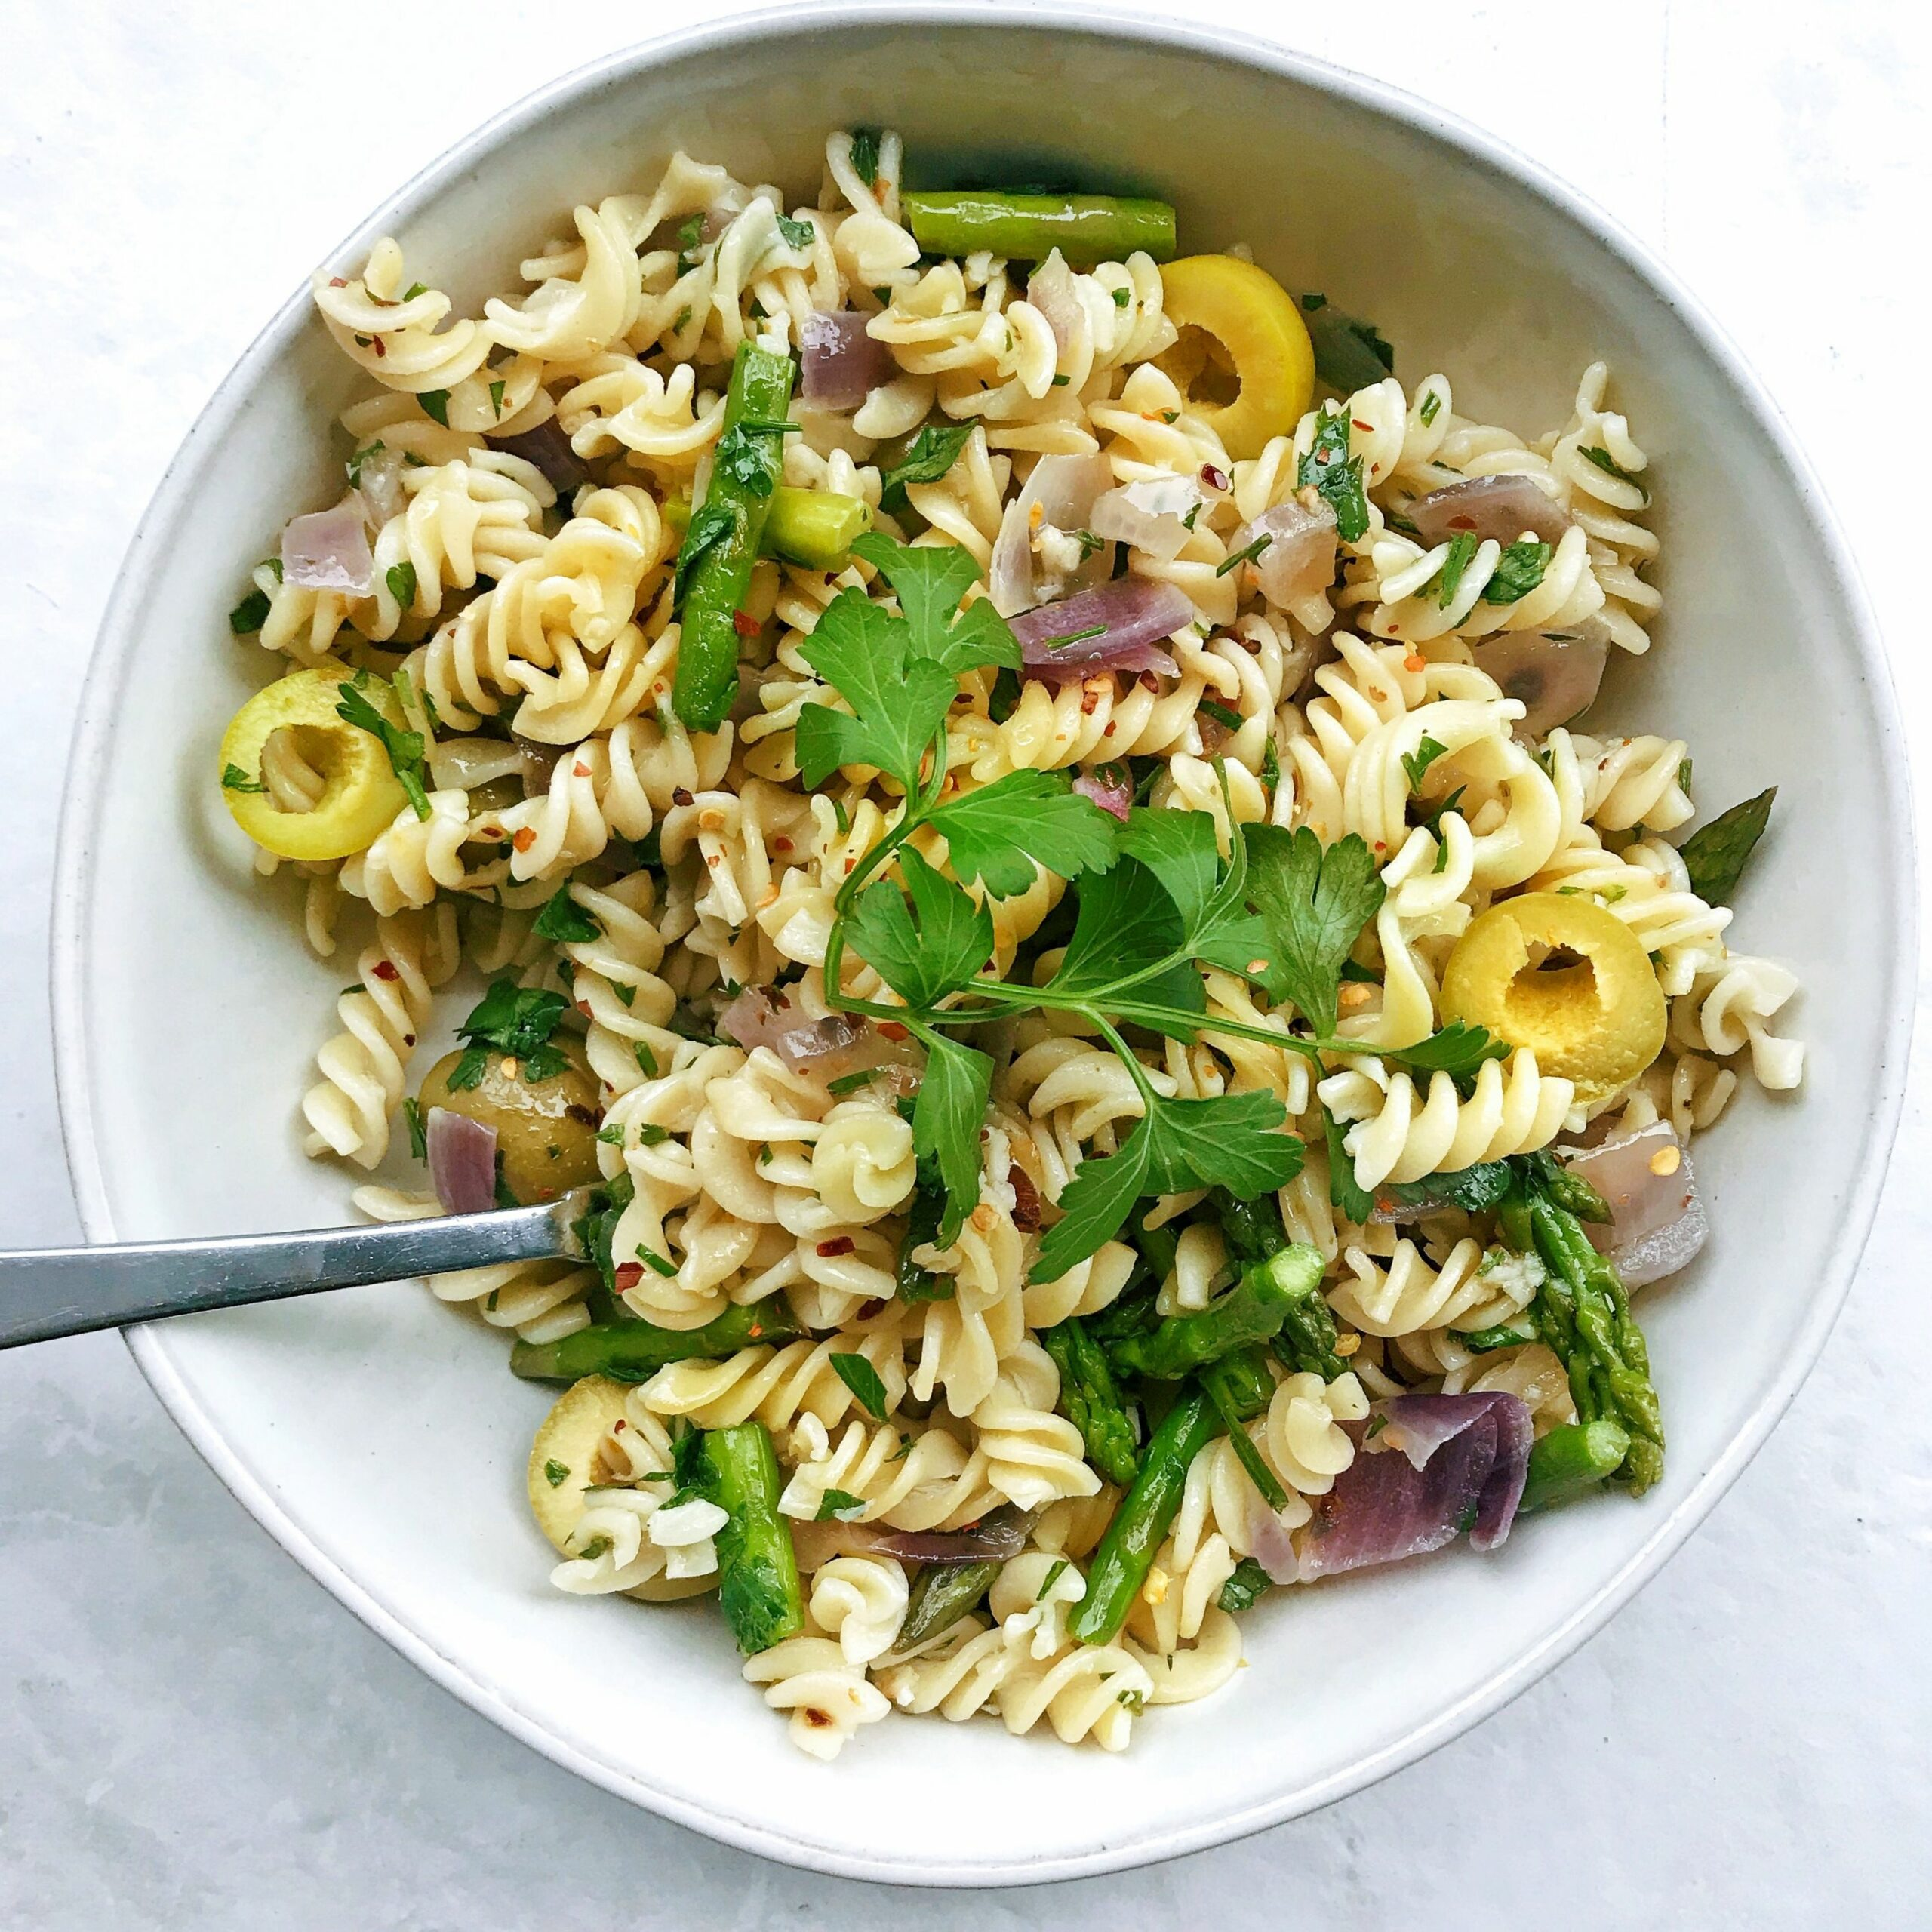 Garlic Olive Oil Quinoa Pasta with Gordal Olives from Spain - Pasta Recipes Olive Oil